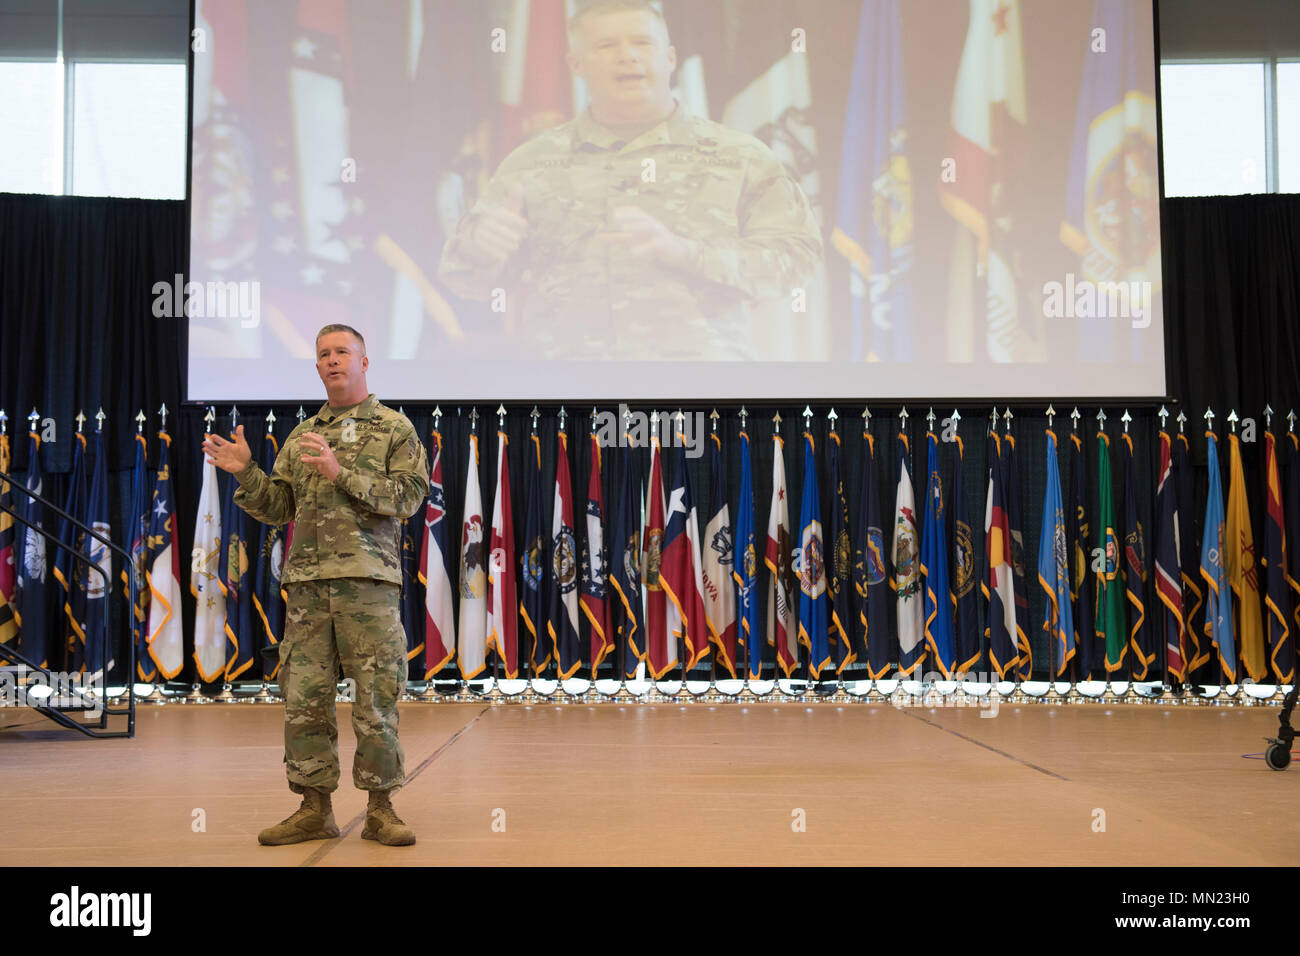 The Adjutant General for the West Virginia National Guard